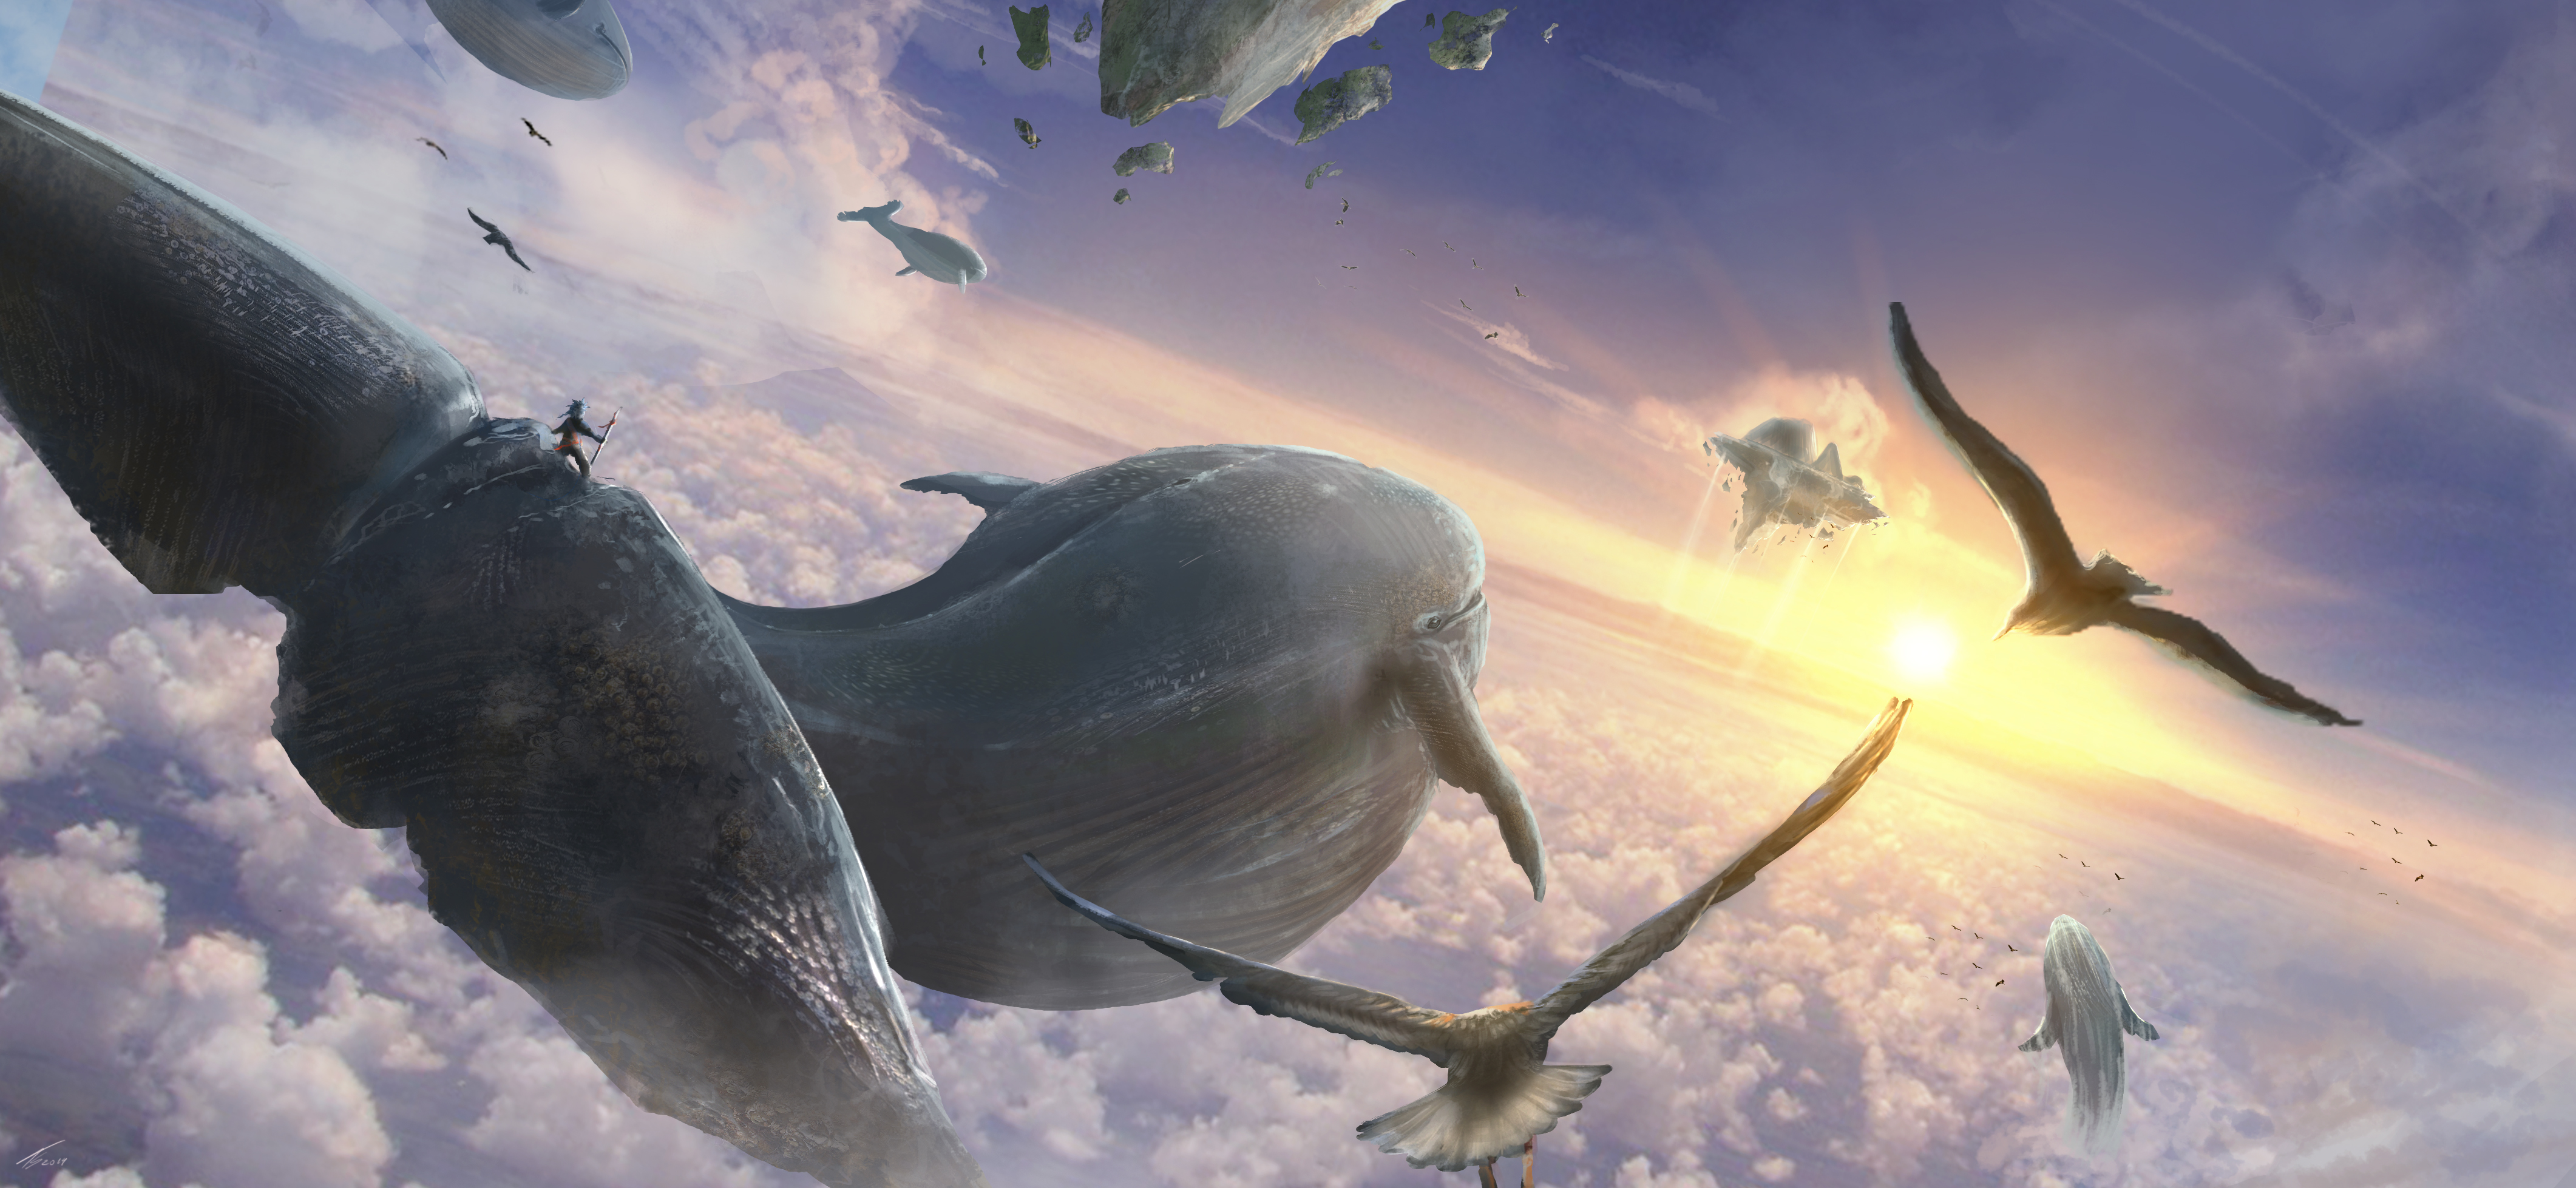 Flying Whales By Tiagosilverio On Deviantart